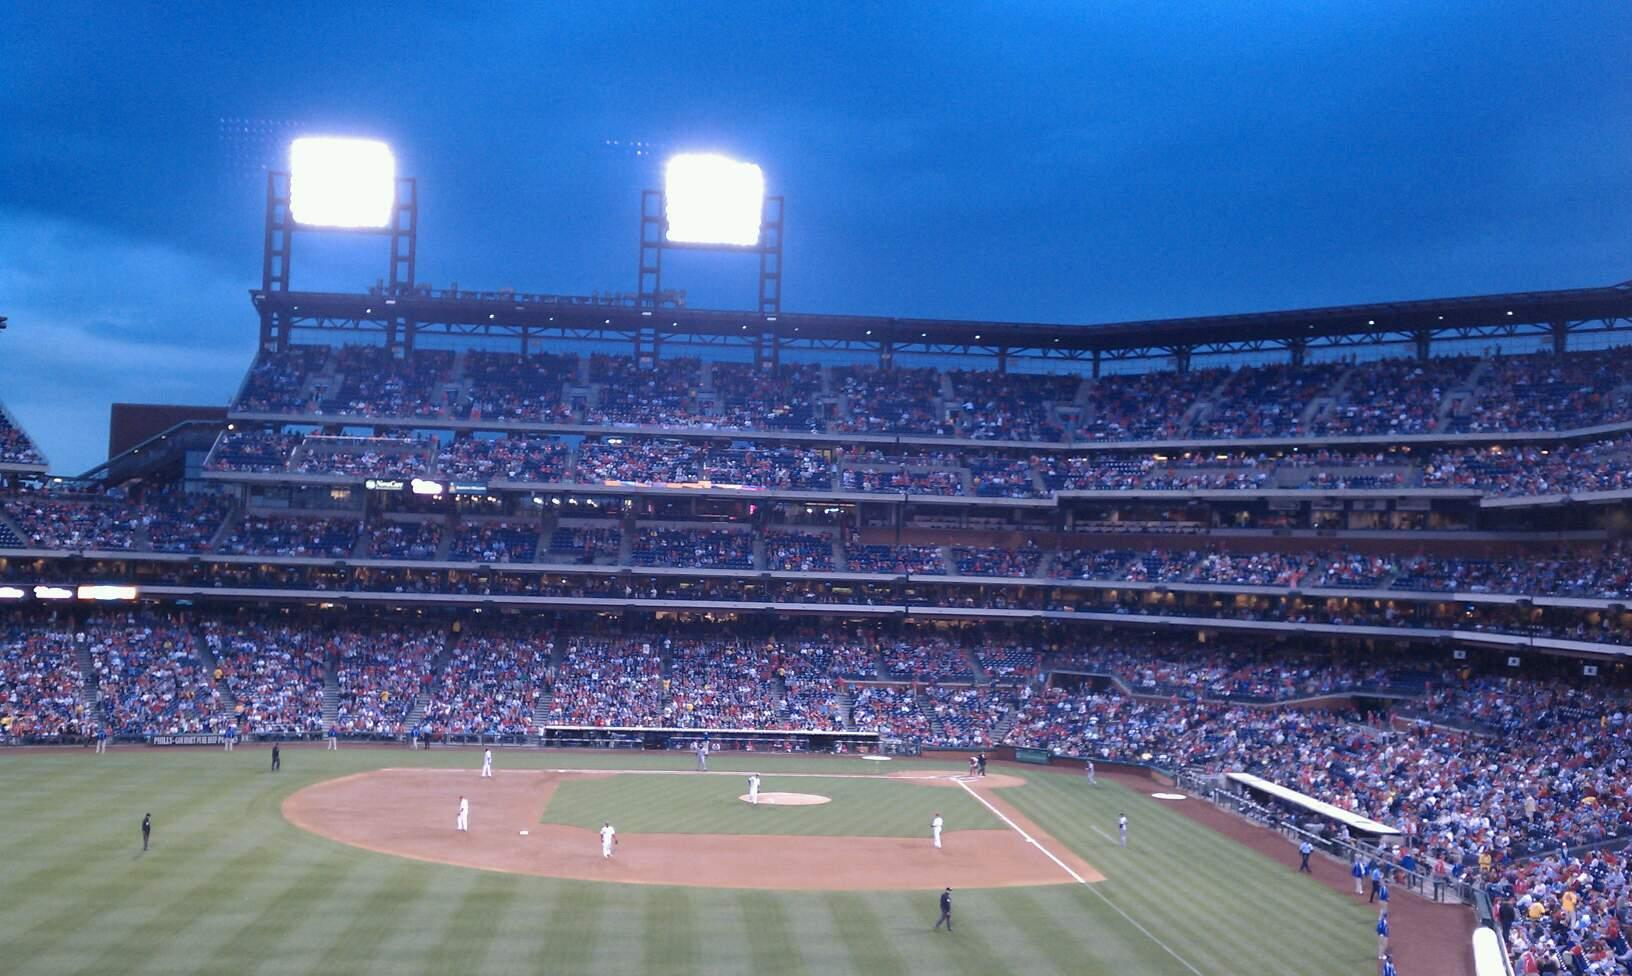 Citizens Bank Park Section 242 Row 7 Seat 12